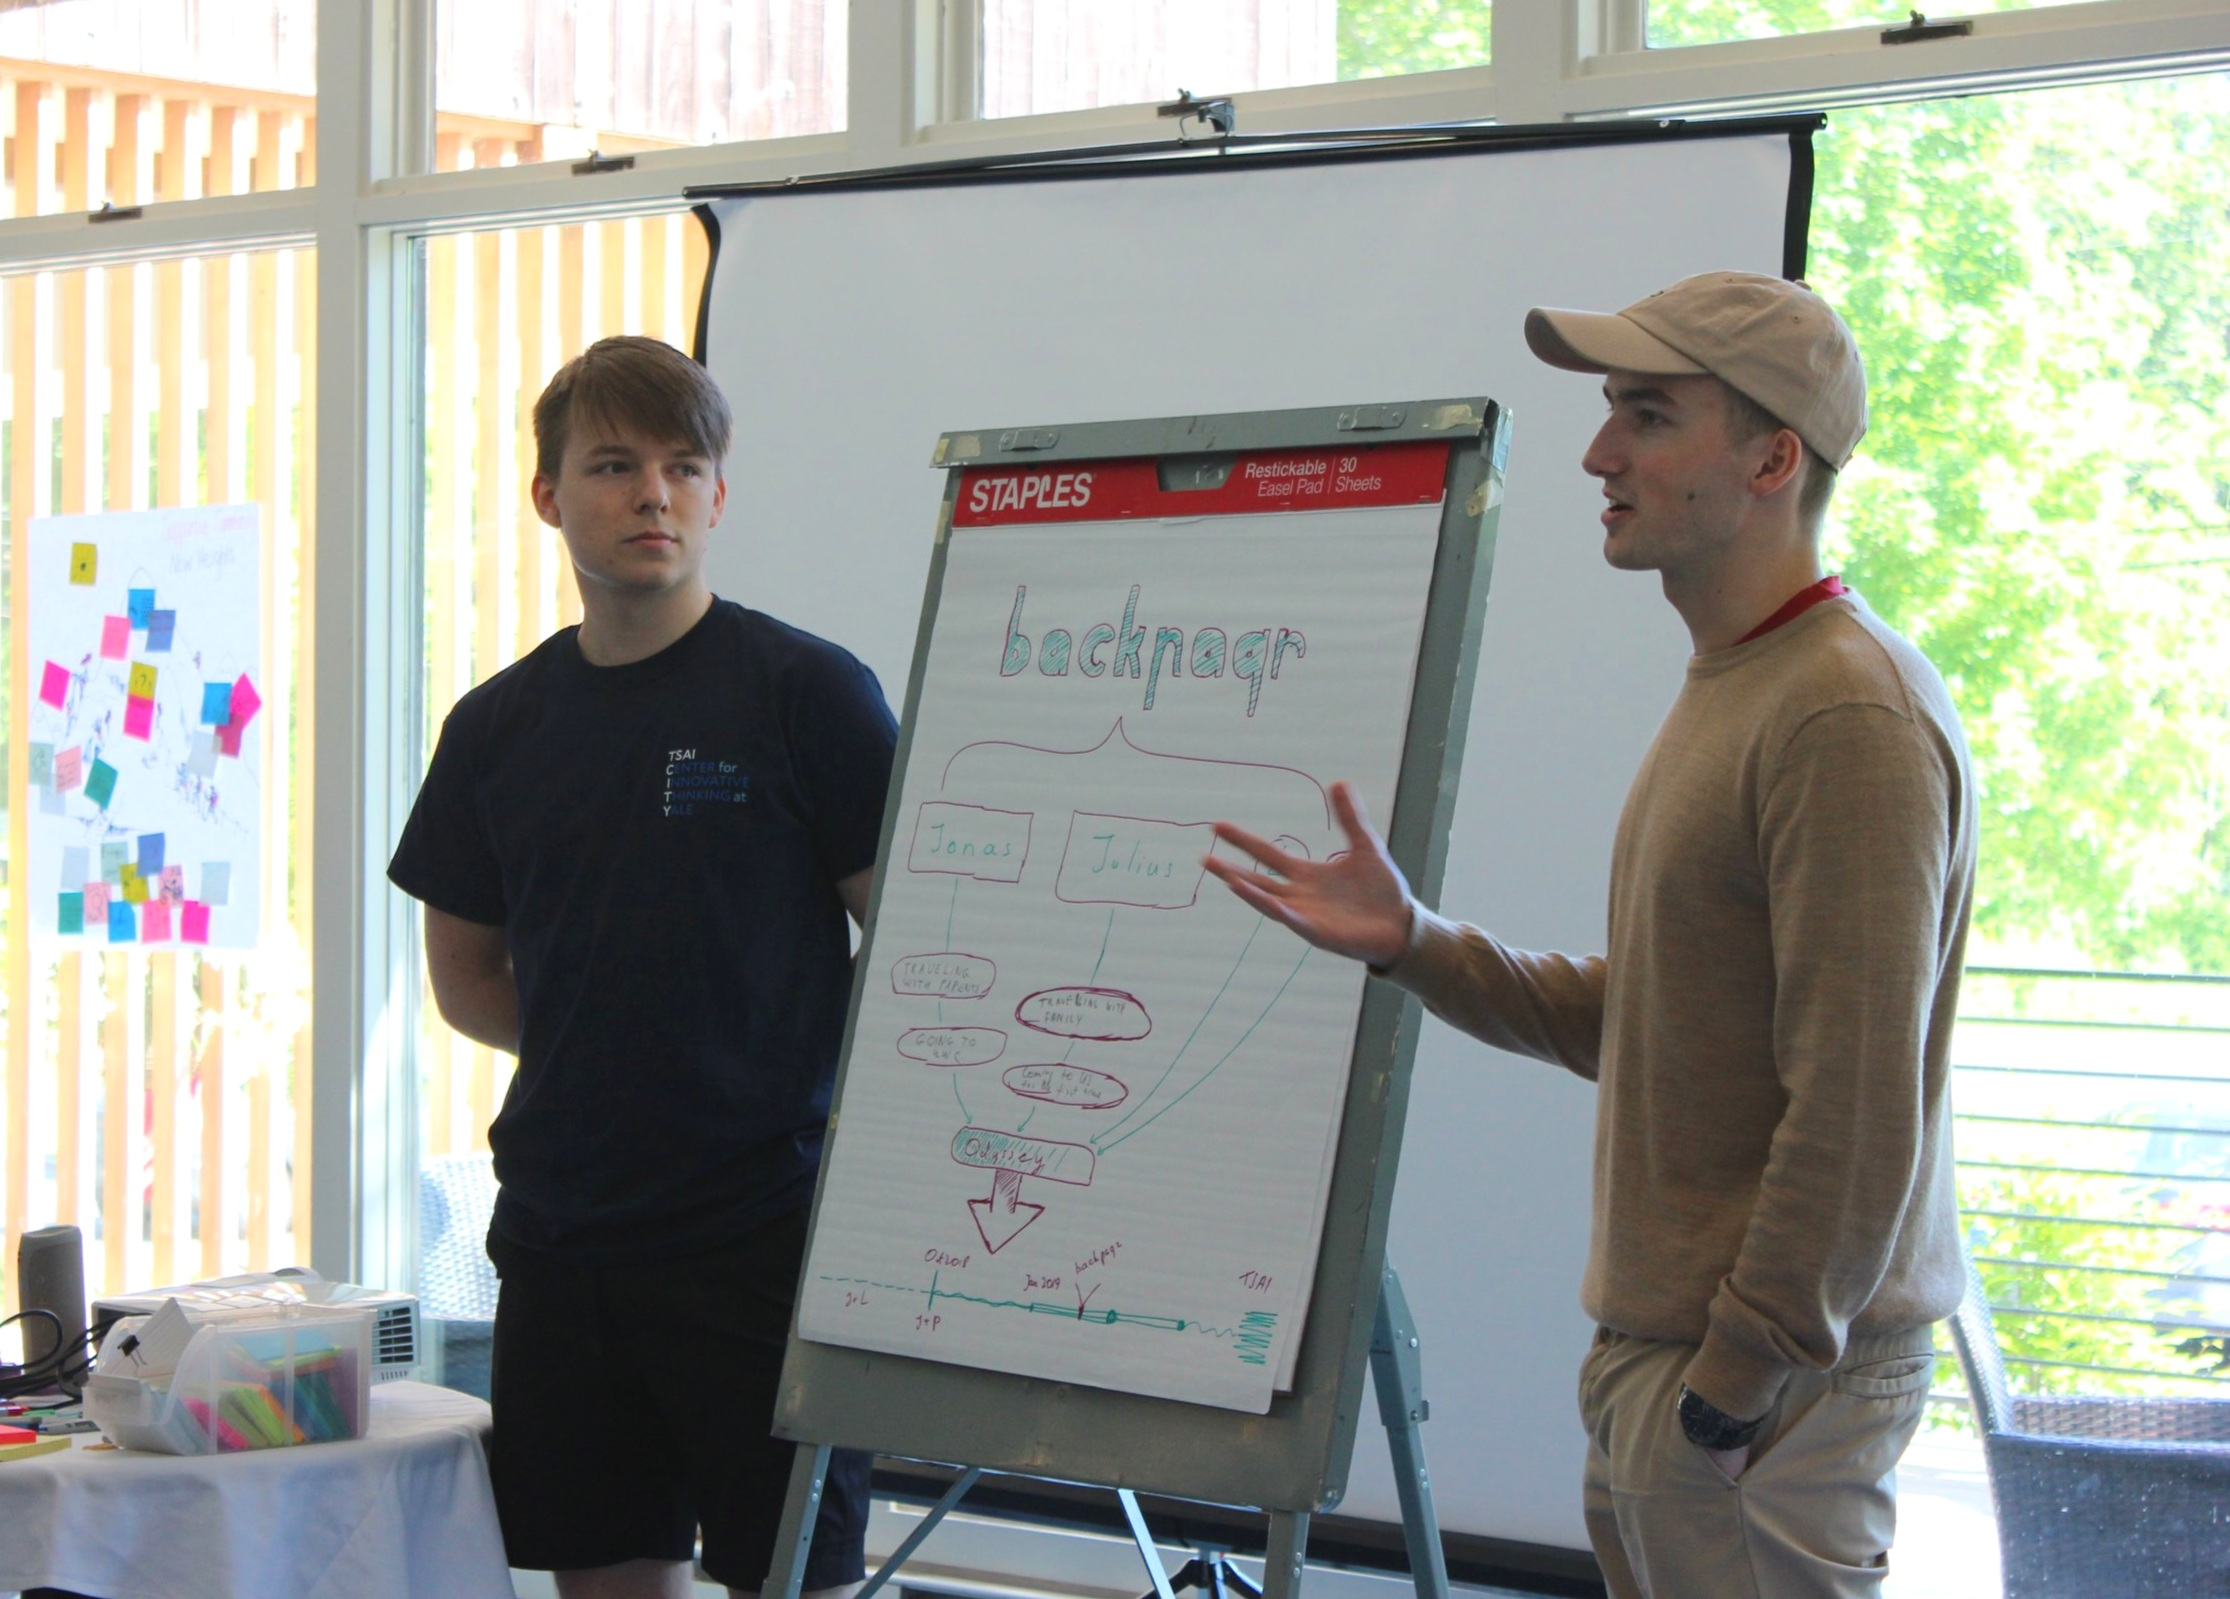 Kavaliauskas and Nedzinskas share their venture's journey at the kickoff retreat.